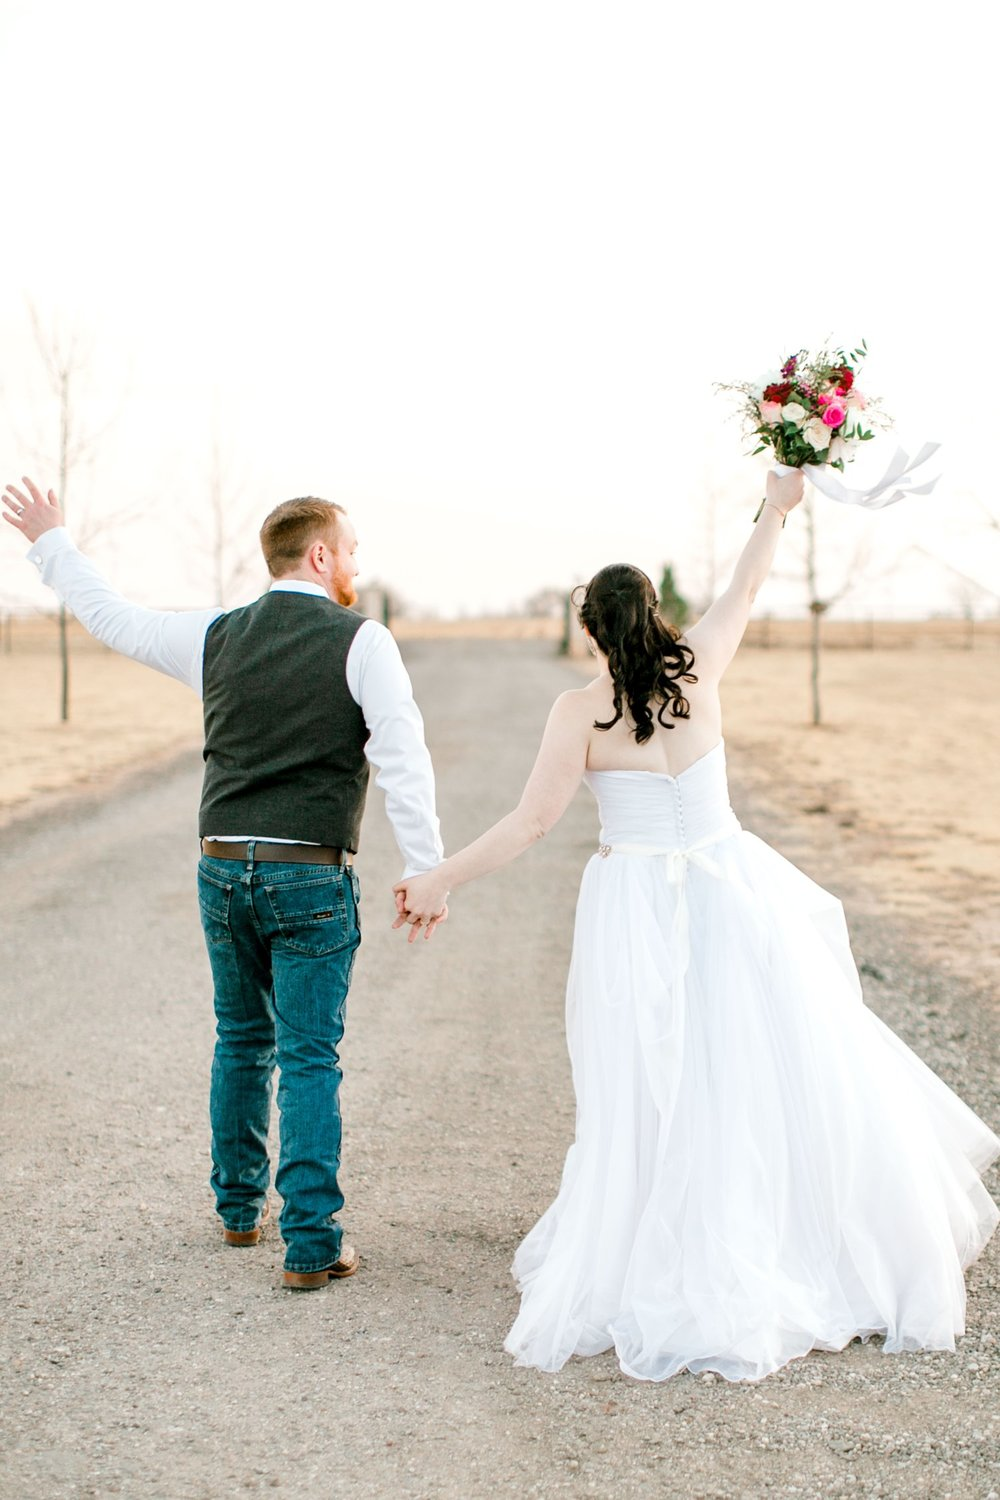 Autumn-Oaks-Events-Morgan-Andy-Lane-Wedding-Lubbock-Photography__0088.jpg